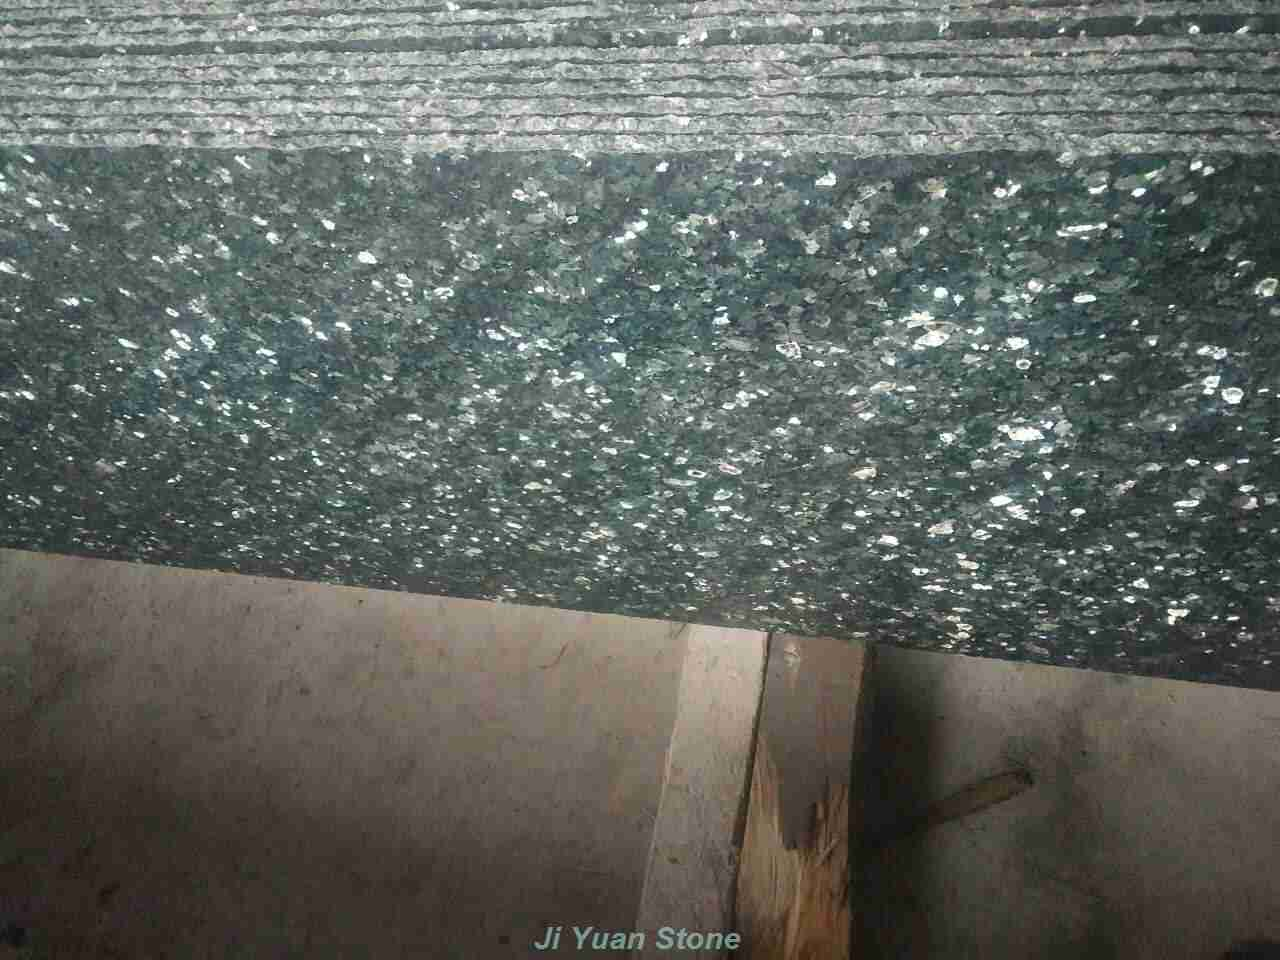 emerald pearl granite,emerald pearl,emerald granite,emerald green granite,emerald pearl granite countertop,emerald granite countertop,emerald pearl granite price